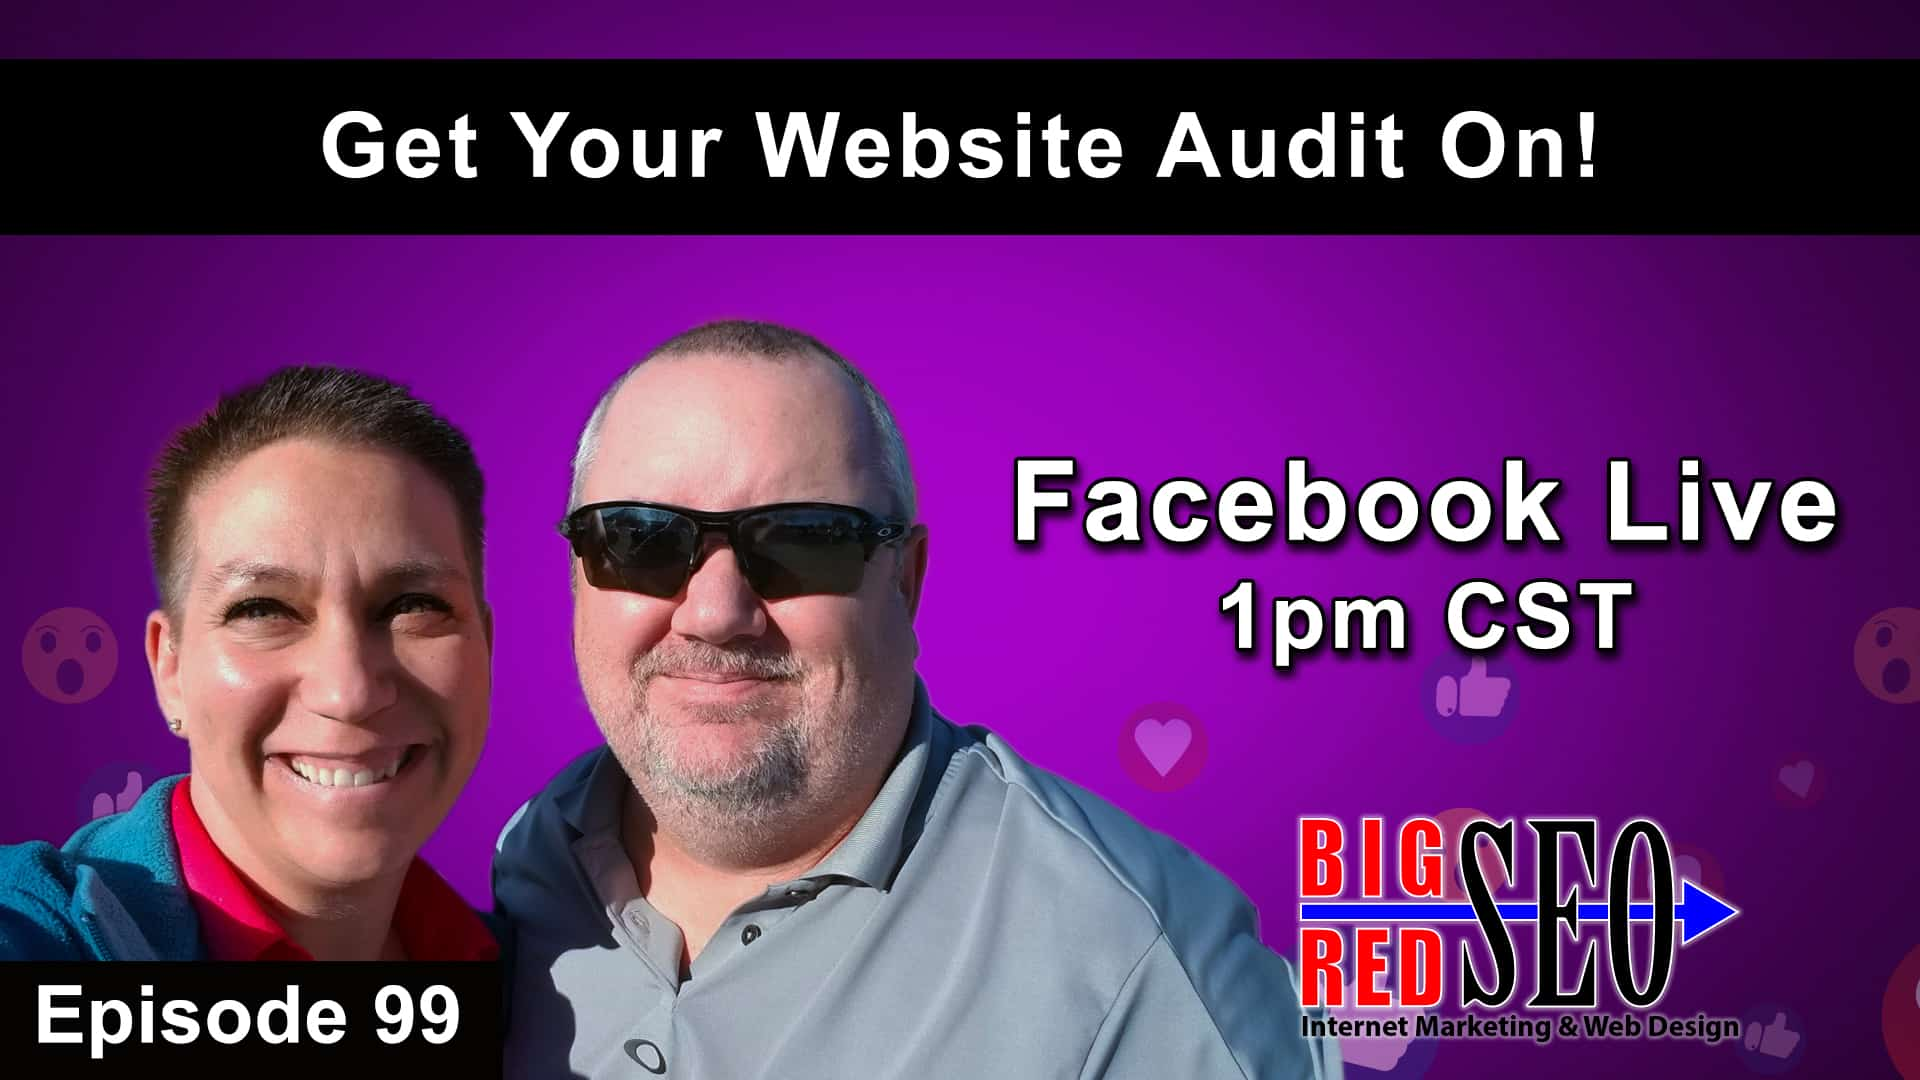 Episode 99 - Website Audits On The Fly